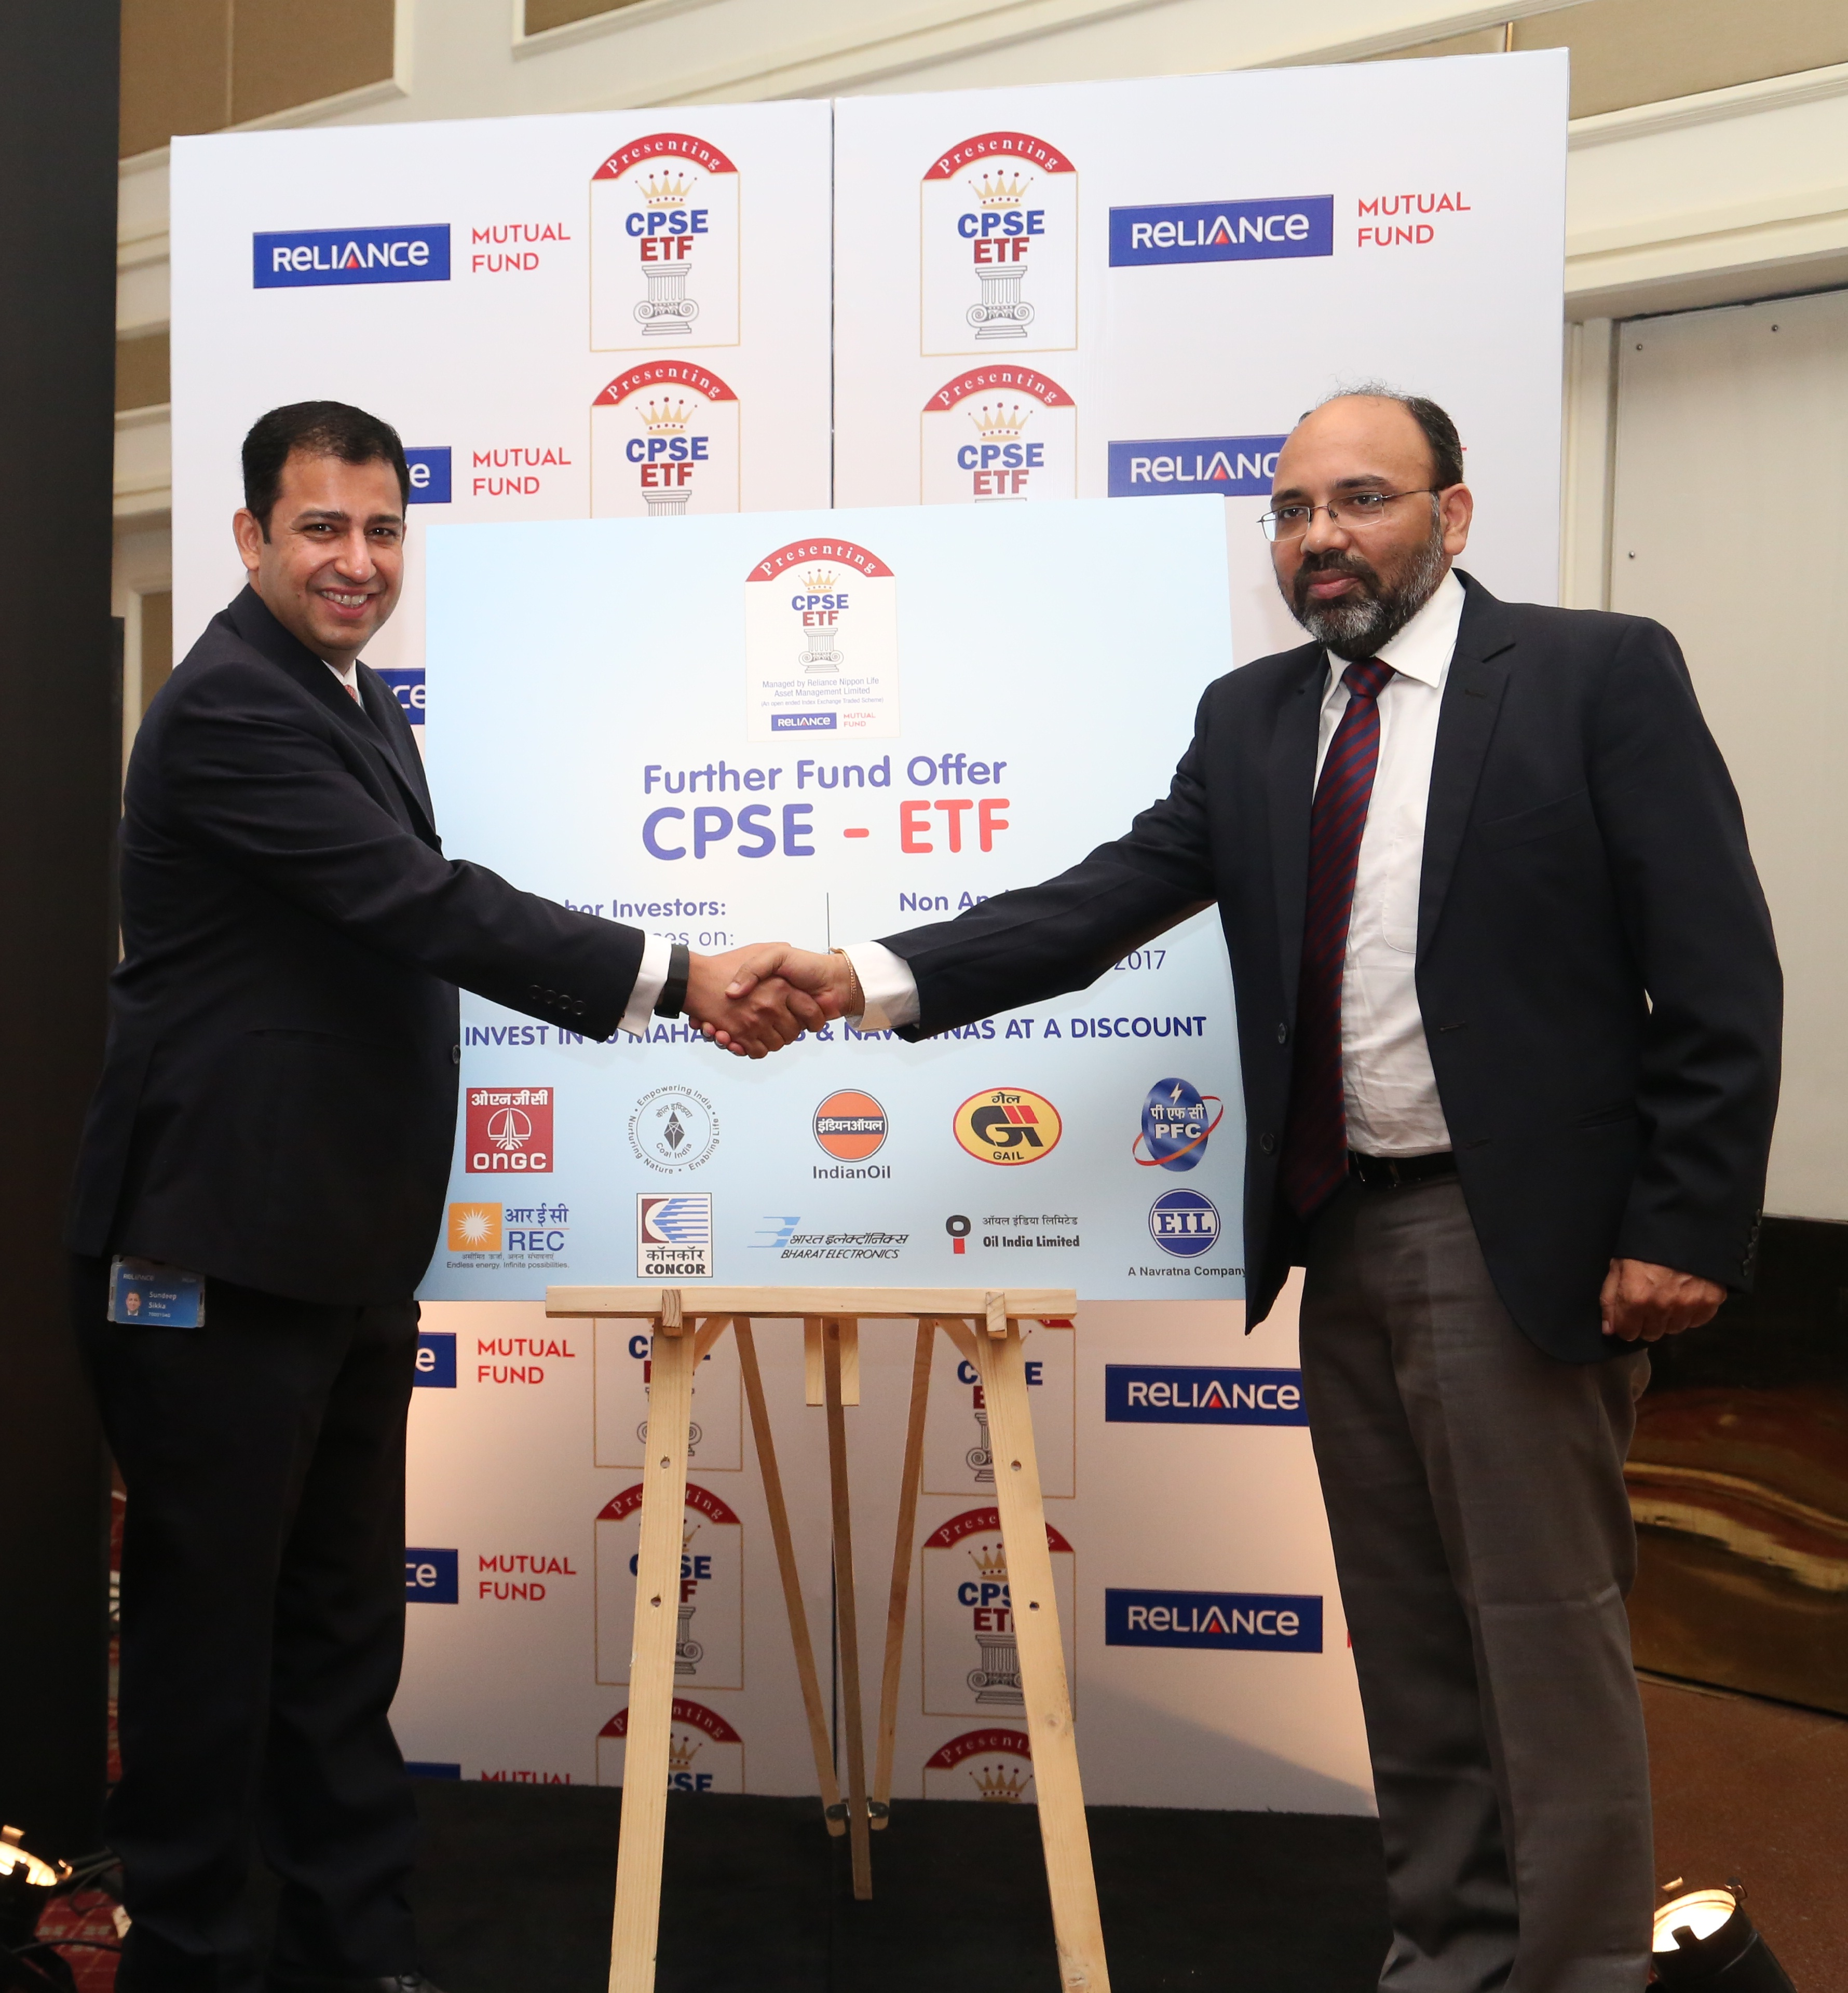 (L to R): Mr Sundeep Sikka, ED & CEO, Reliance Nippon  Life Asset Management and Mr Manish Singh, Joint Secretary, DIPAM, Ministry of Finance, unveiling and announcing the FFO of CPSE ETF.- Photo by GPN NETWORK Sachin Murdeshwar.